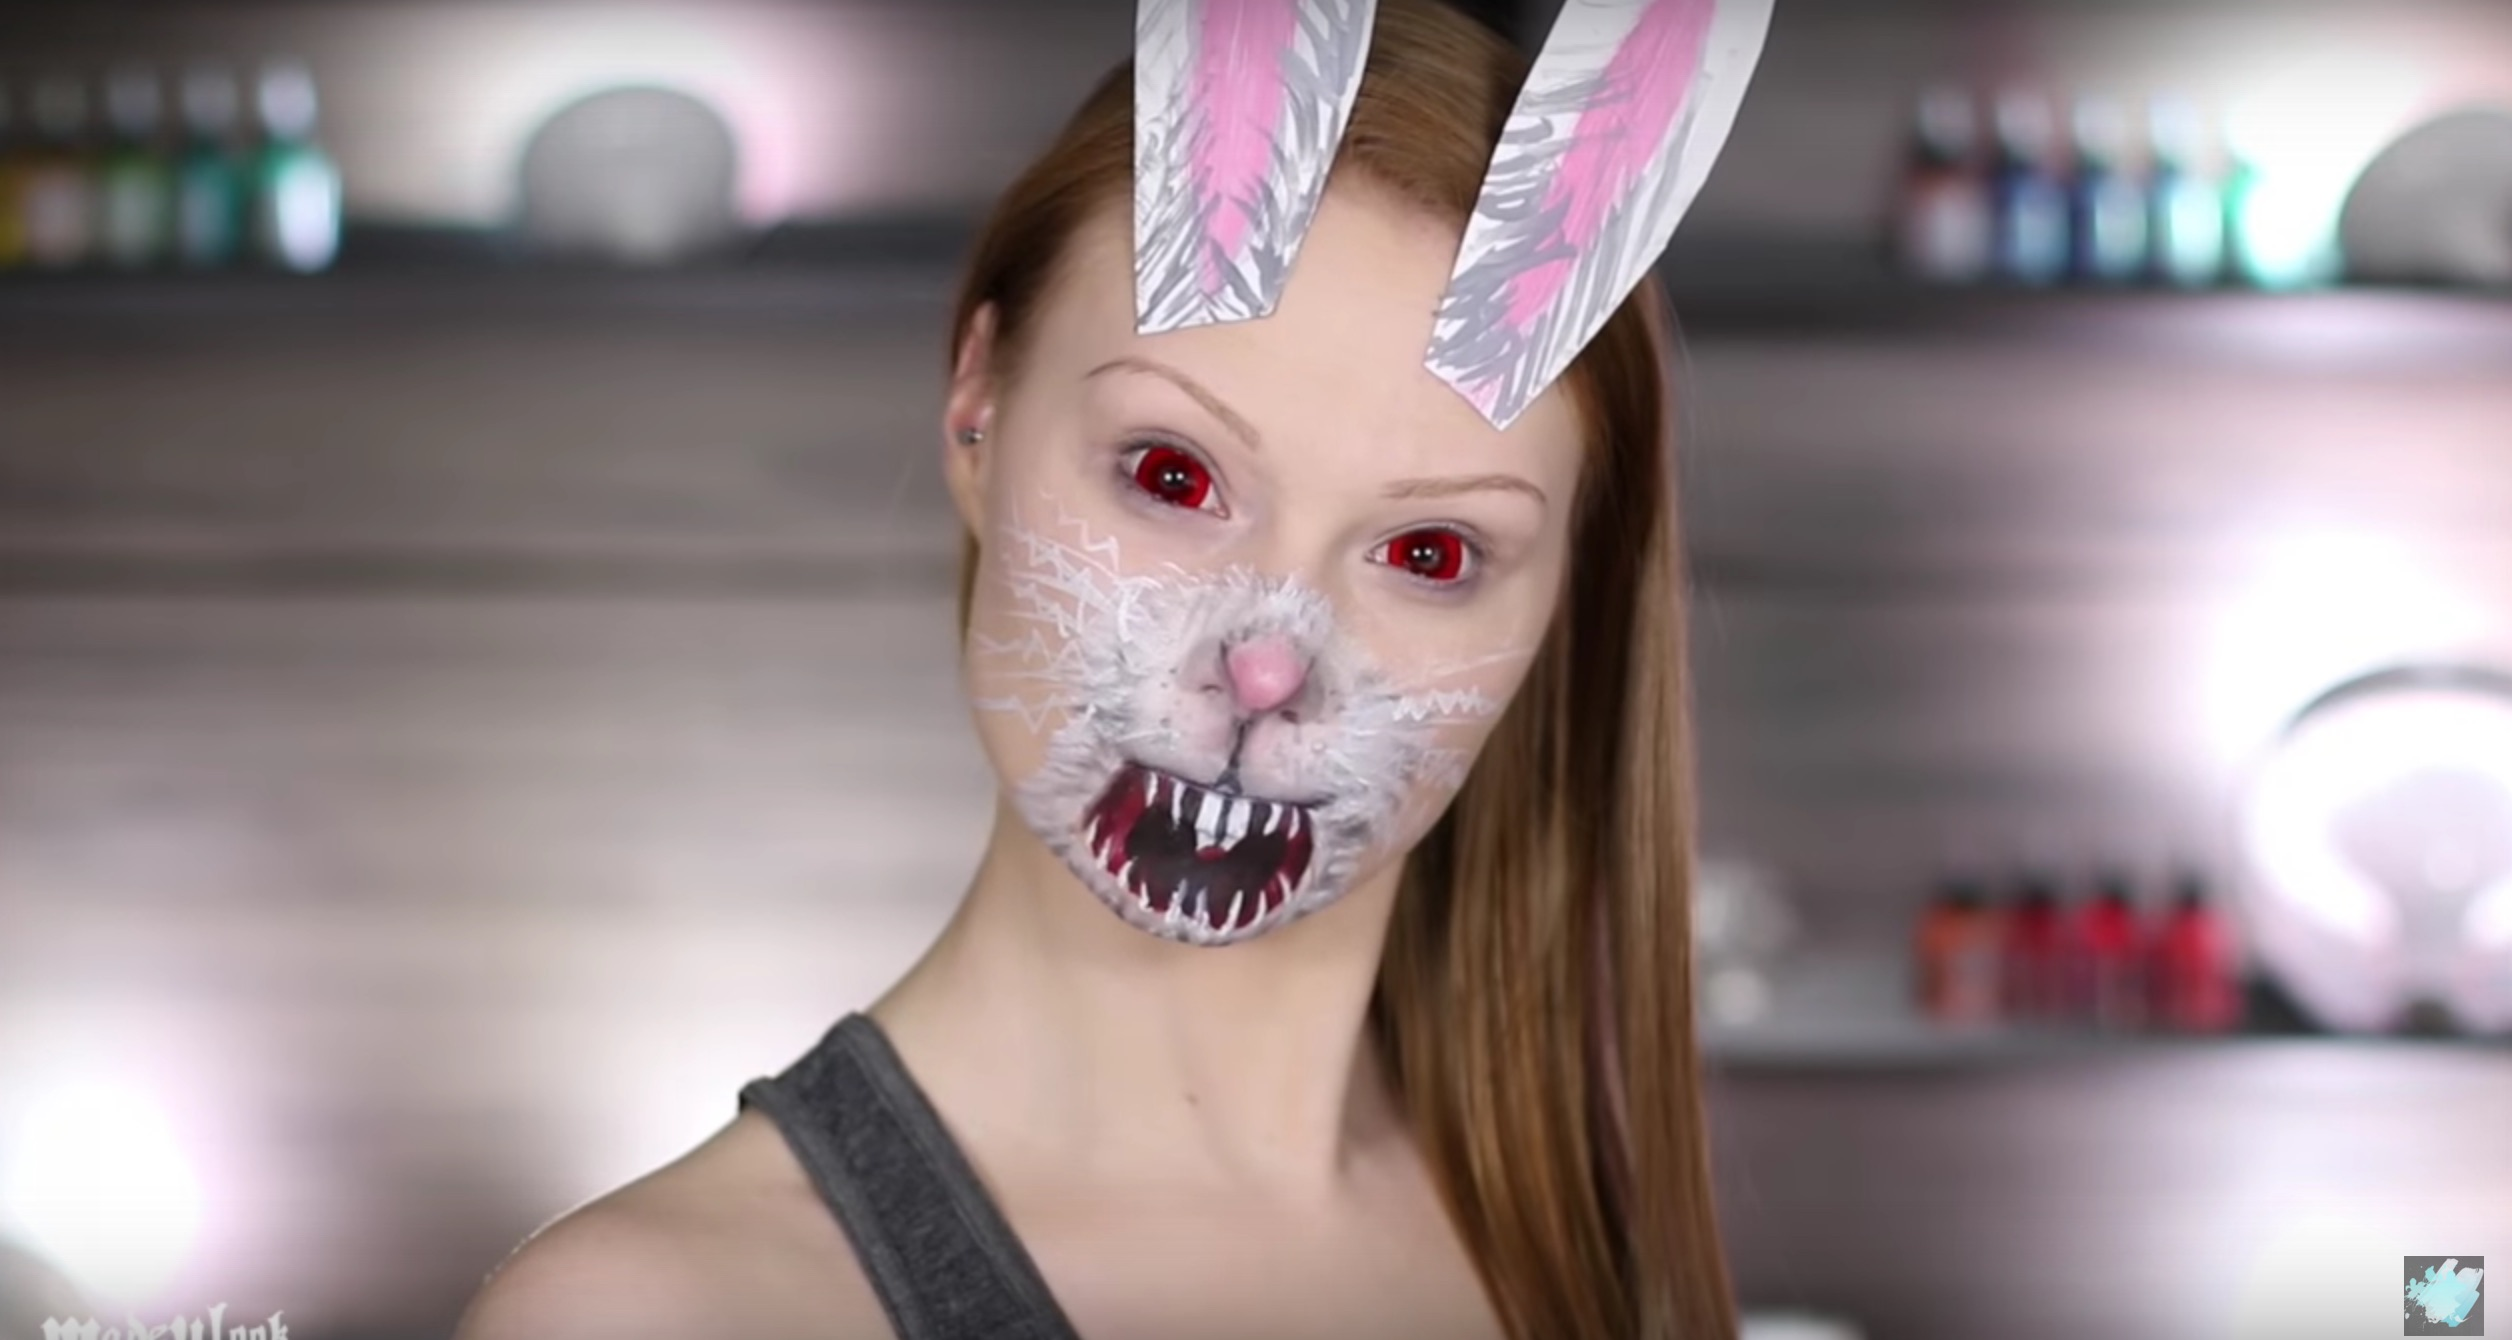 Put your eyes on these impressive (and kind of terrifying) Snapchat makeup tutorials